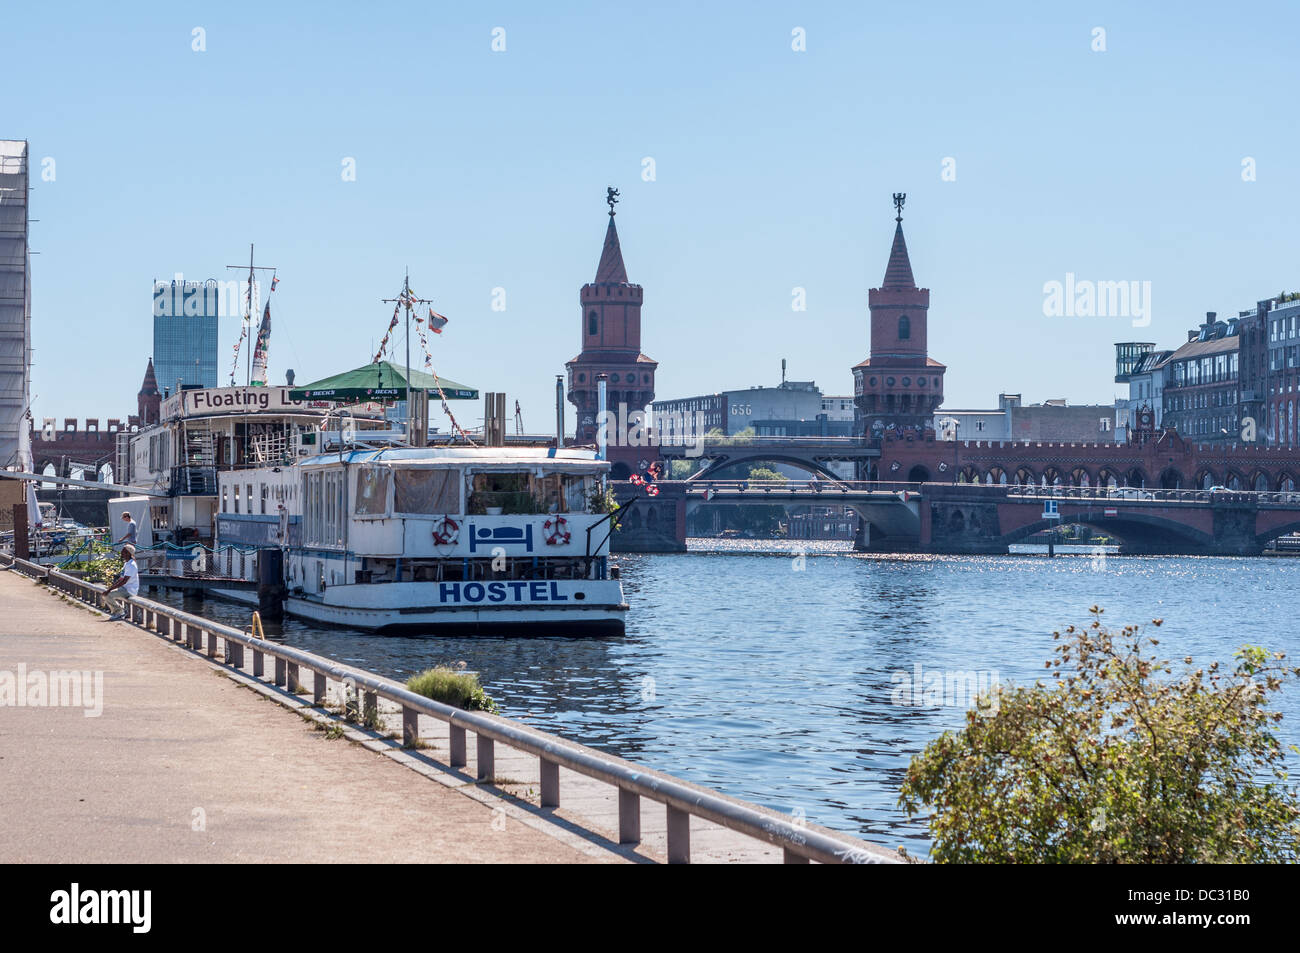 Western Comfort Floating Hostel with Floating Lounge on the Spree River, and Oberbaum Brücke (Oberbaum Bridge) – Stock Photo